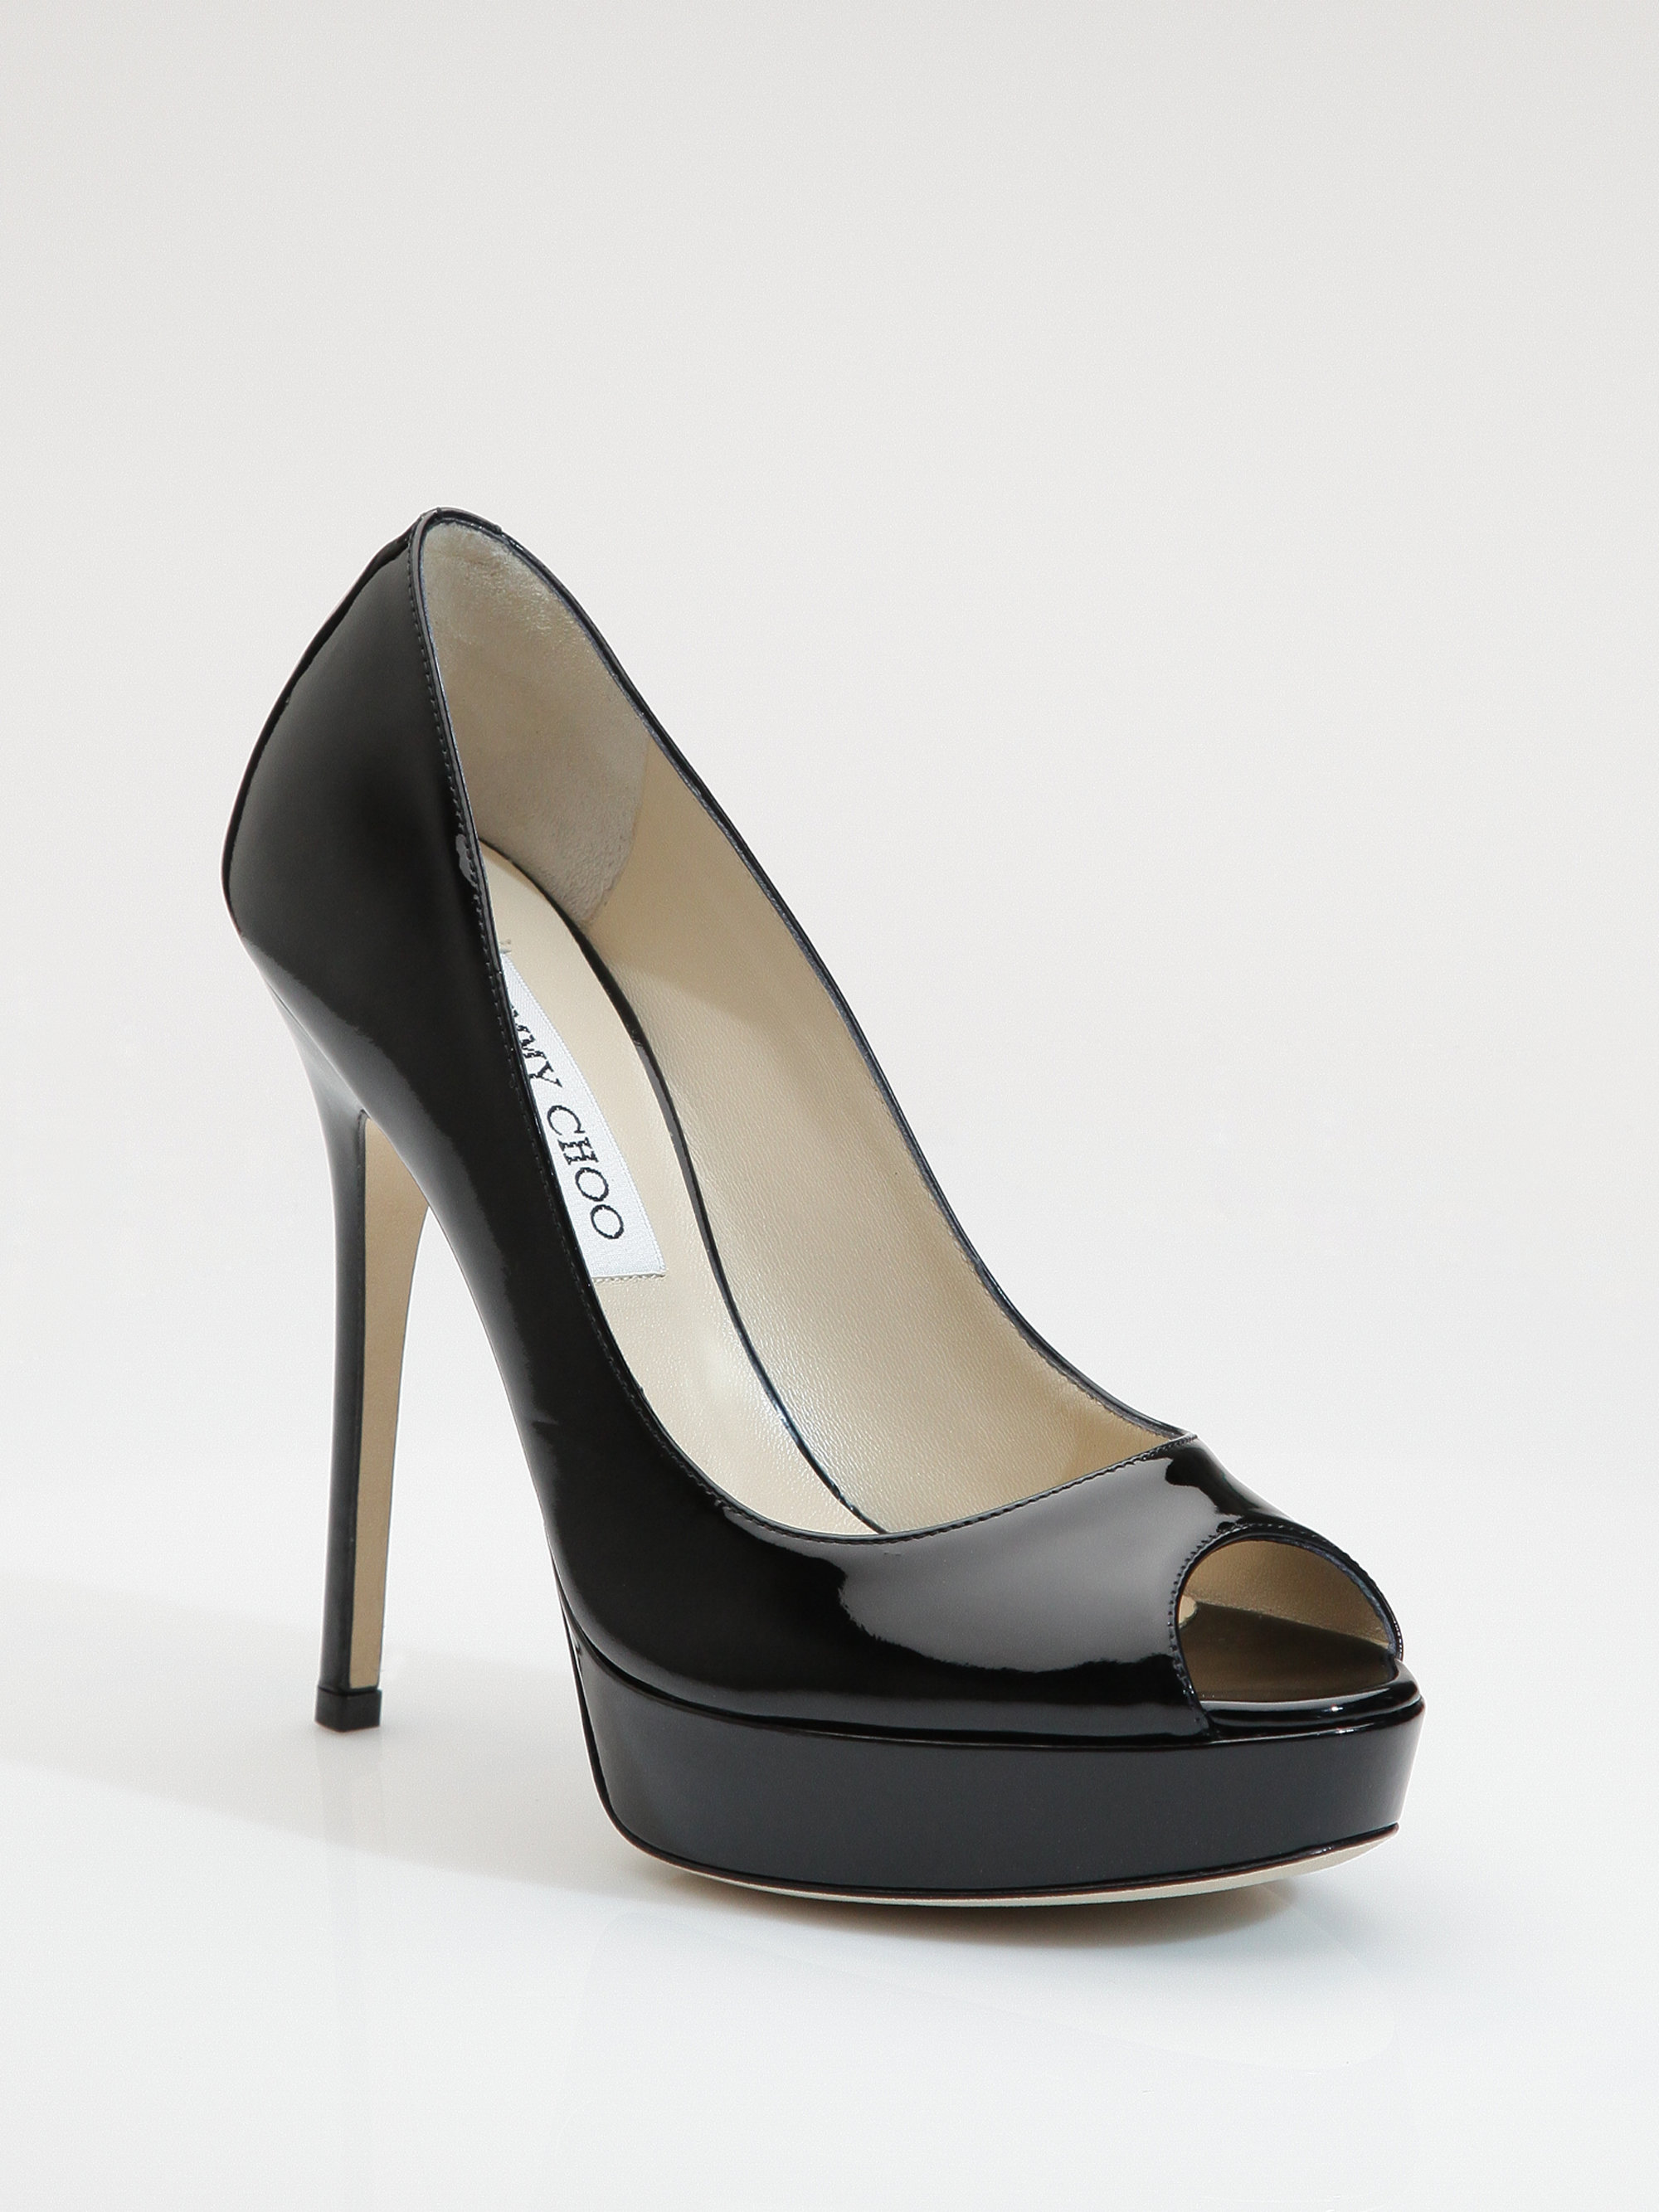 8608eb8cf16 Lyst - Jimmy Choo Crown Patent Leather Peep-Toe Pumps in Black